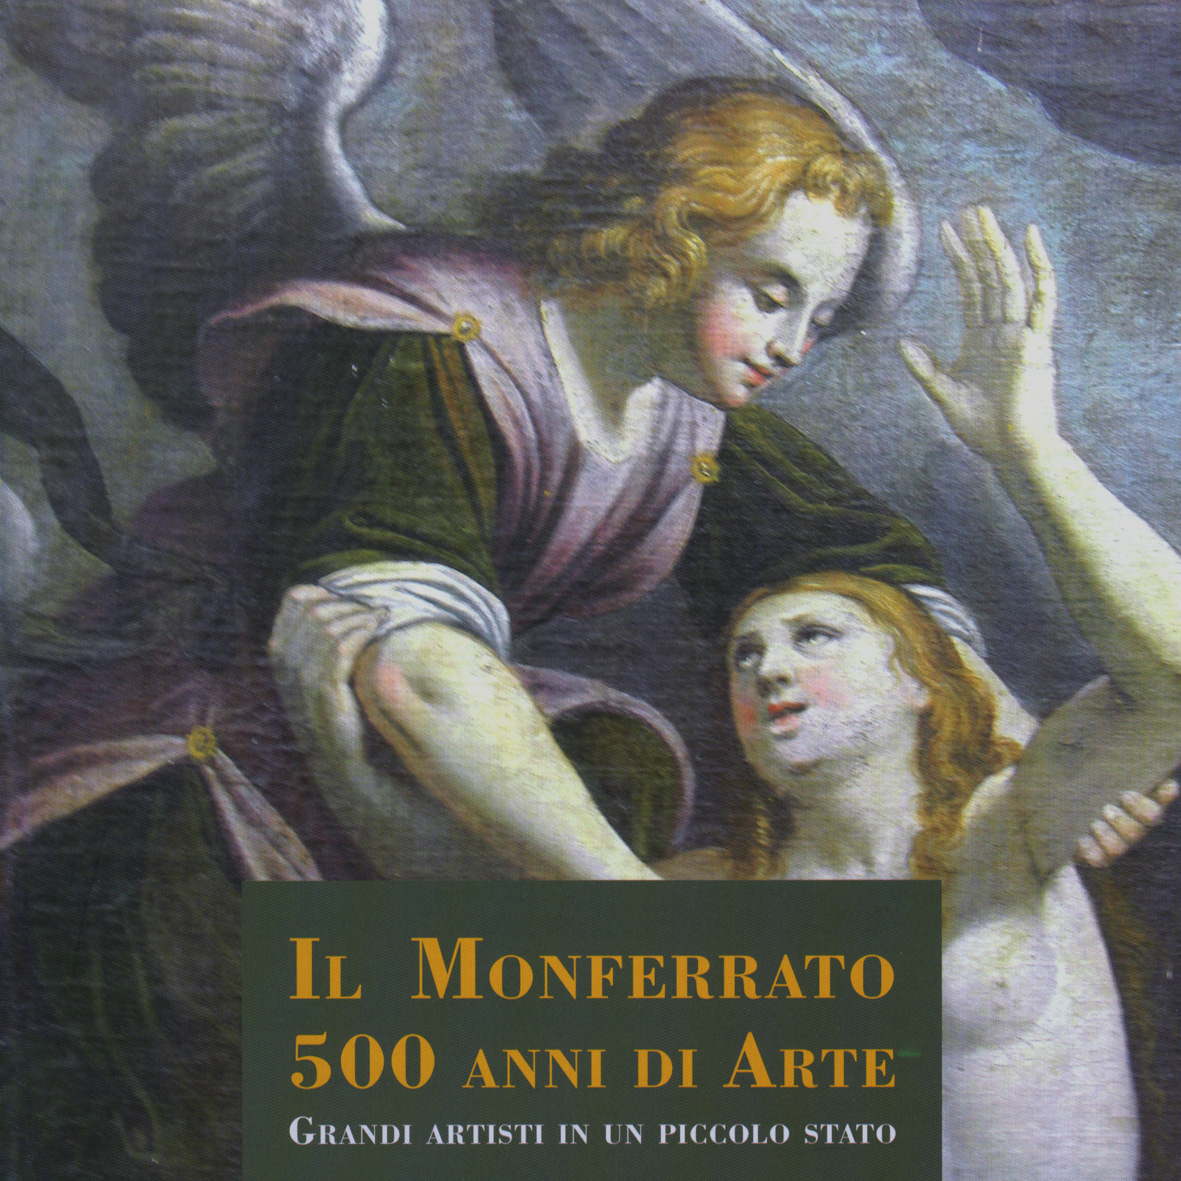 """Il Monferrato, 500 anni di Arte""  Art Catalogue, Lizea Editions, Acqui Terme, Alessandria, 2014"